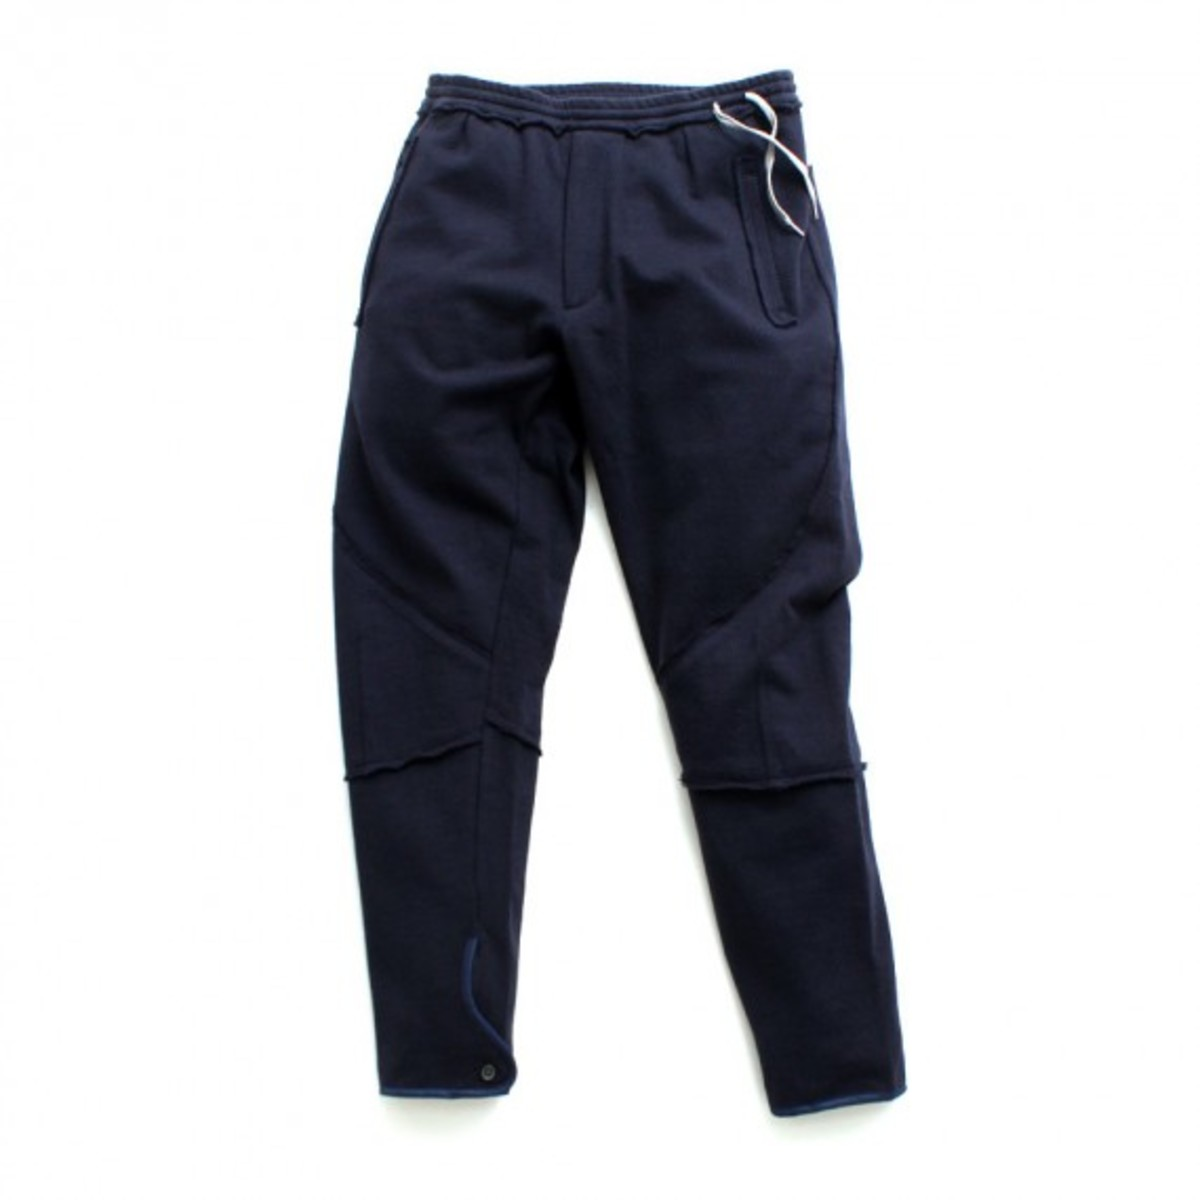 cash-ca-spring-summer-2012-twill-jersey-riding-pants